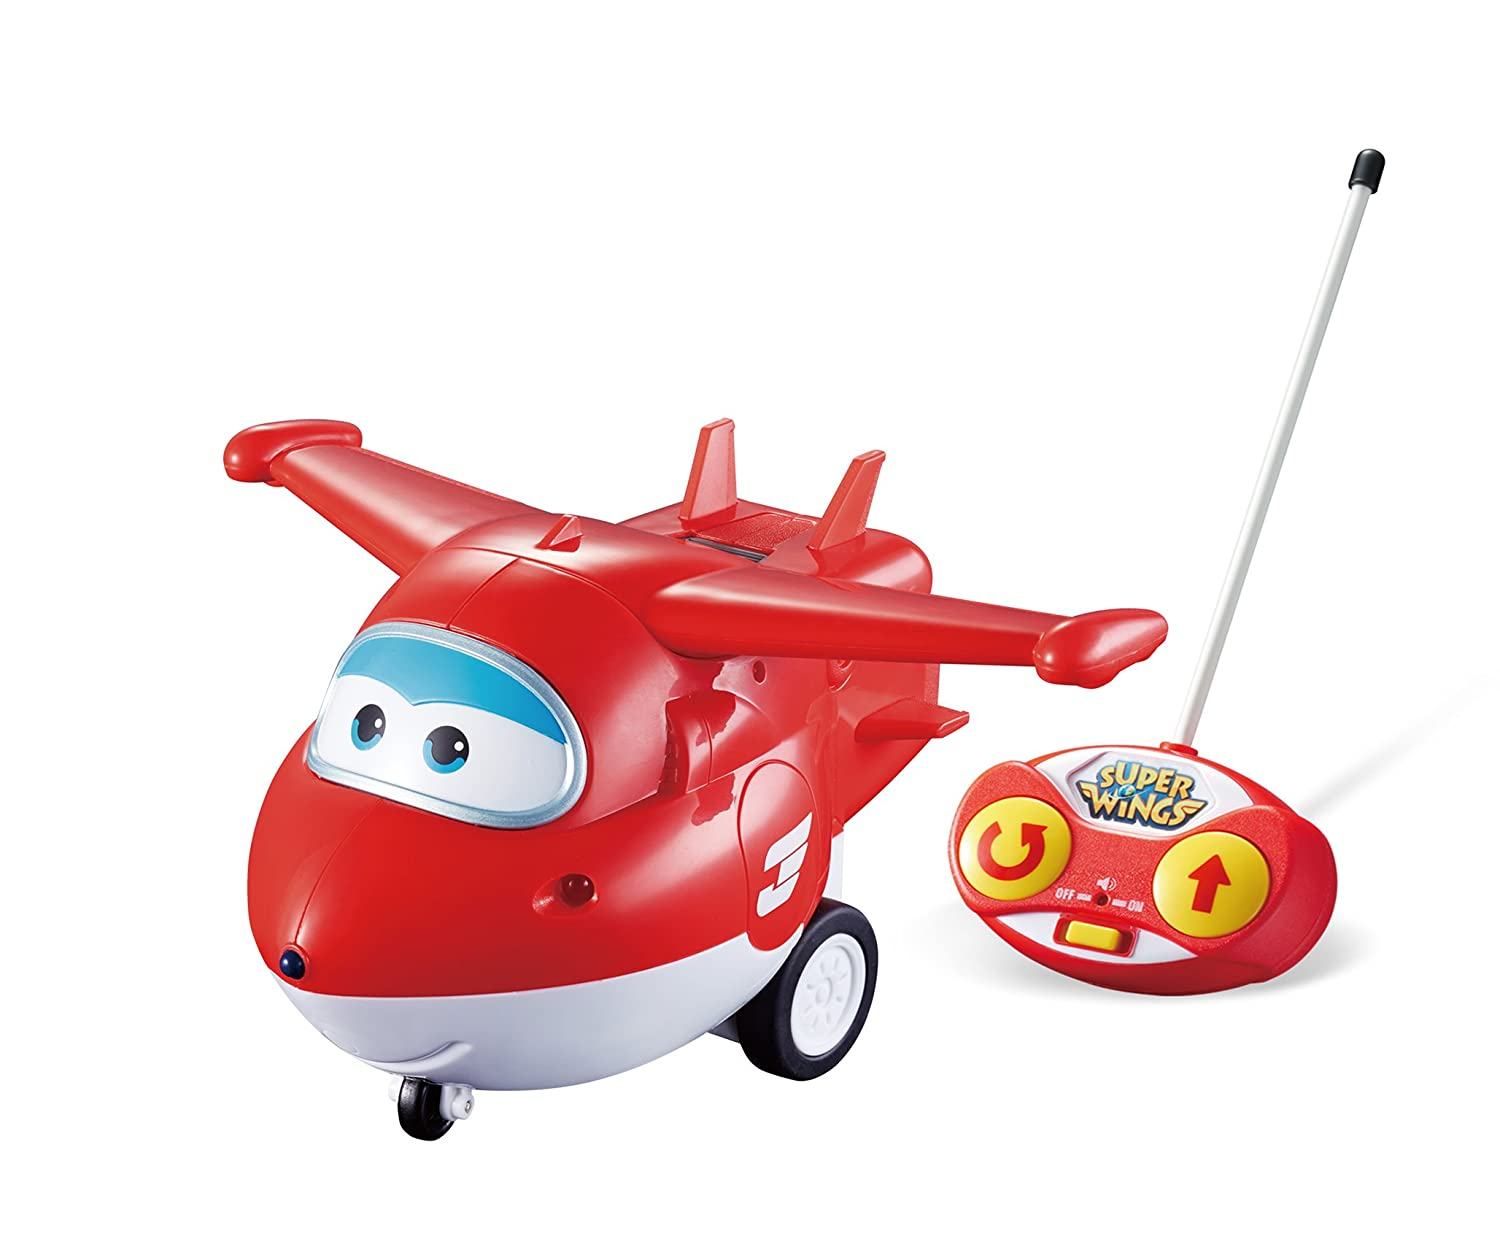 Super Wings Toy Rc Vehicle Remote Control Jett Toys The Plane Sound System Mr V4 Multi Engine Pack Games